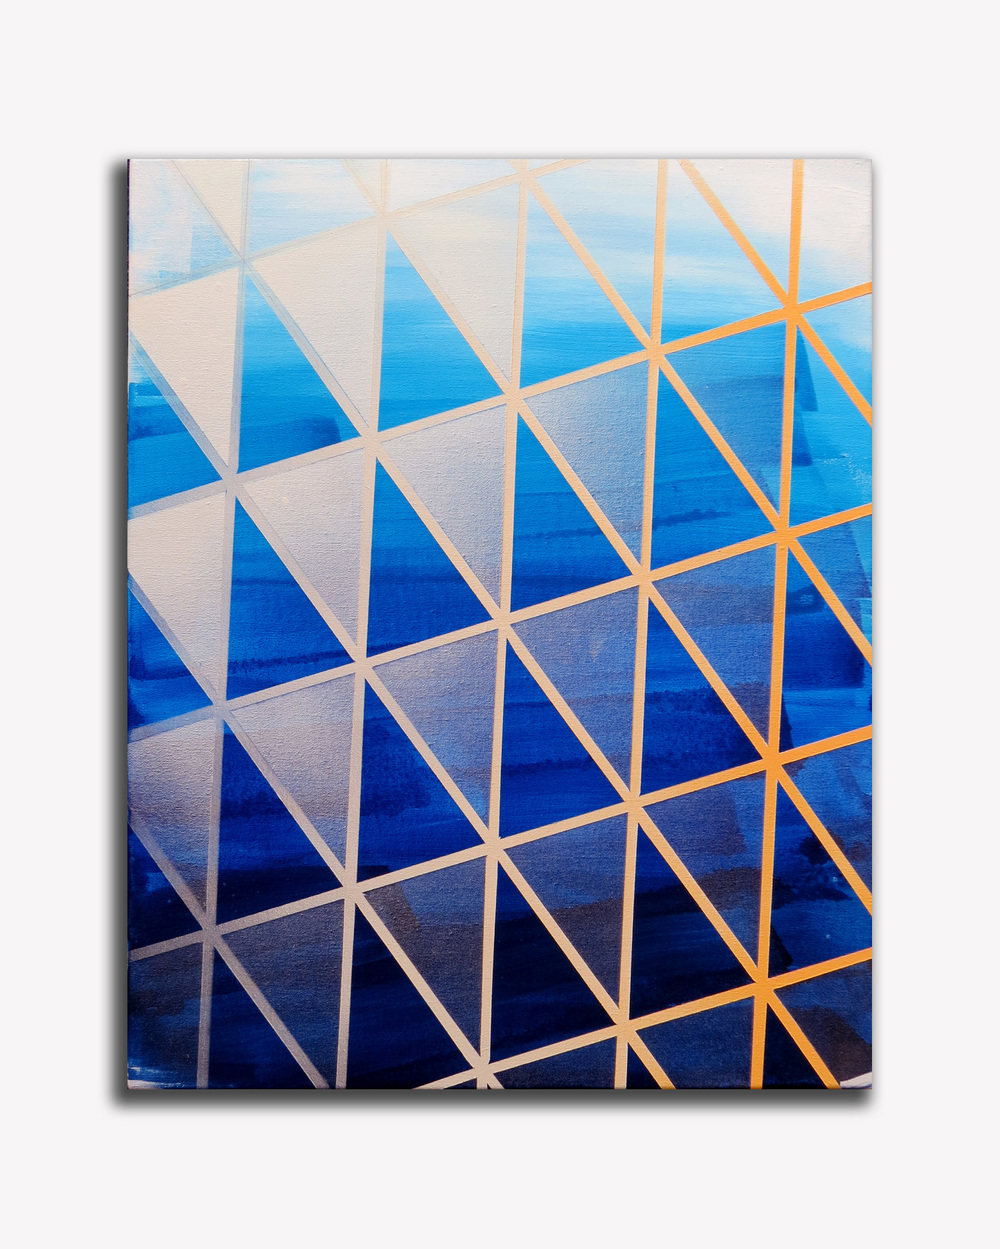 Oscillate #5, 40 x 50cm, Acrylic on canvas, 2016.jpg